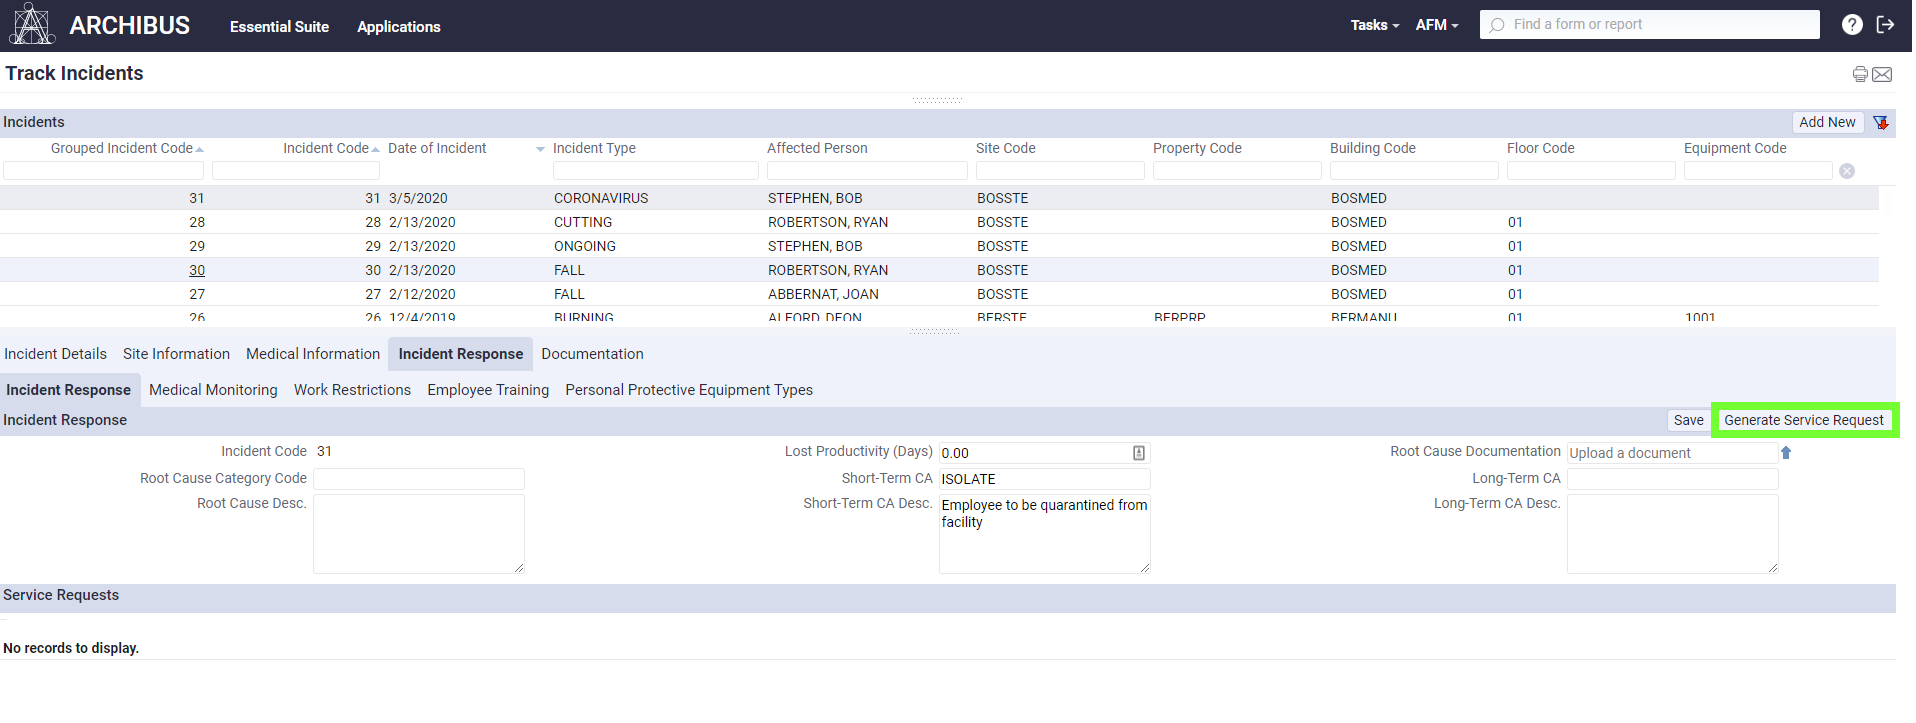 A screenshot of the Generate Service Request option in Incident Response in ARCHIBUS Environmental Health and Safety.